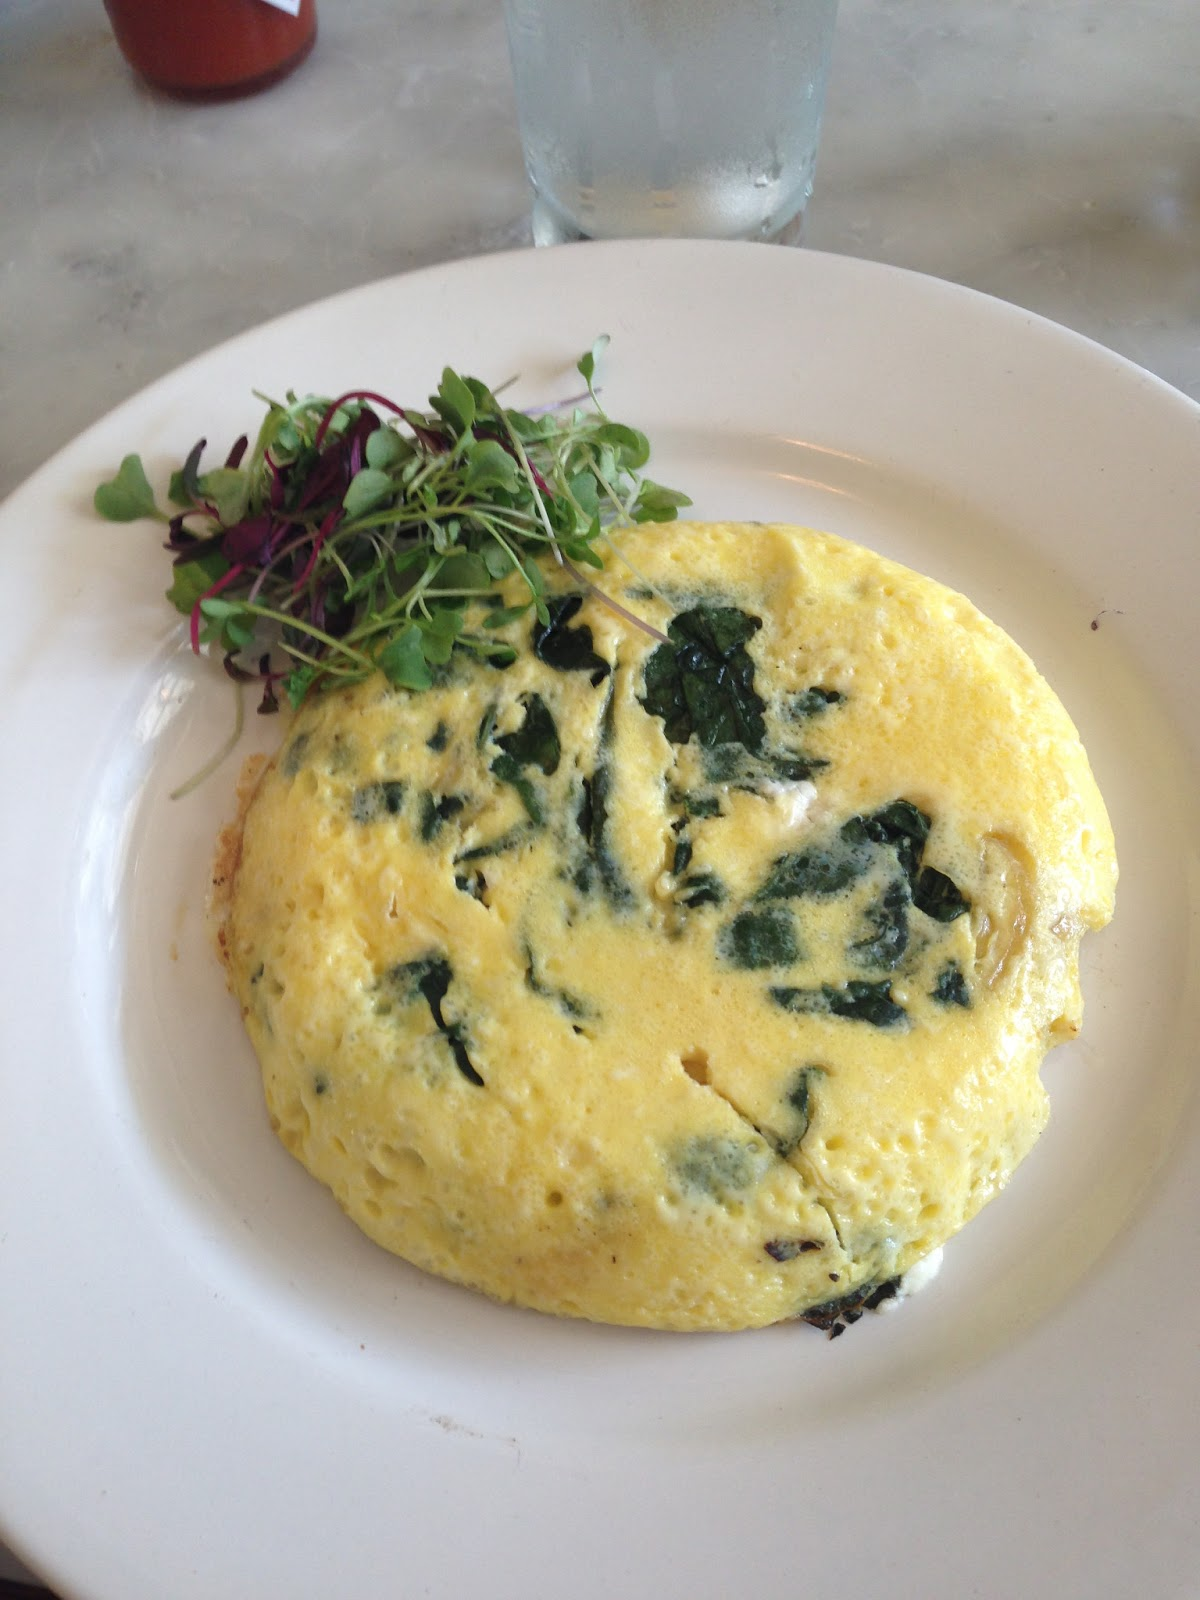 ... Favorite: Black Kale, Onion & Goat Cheese Frittata at Little Dom's